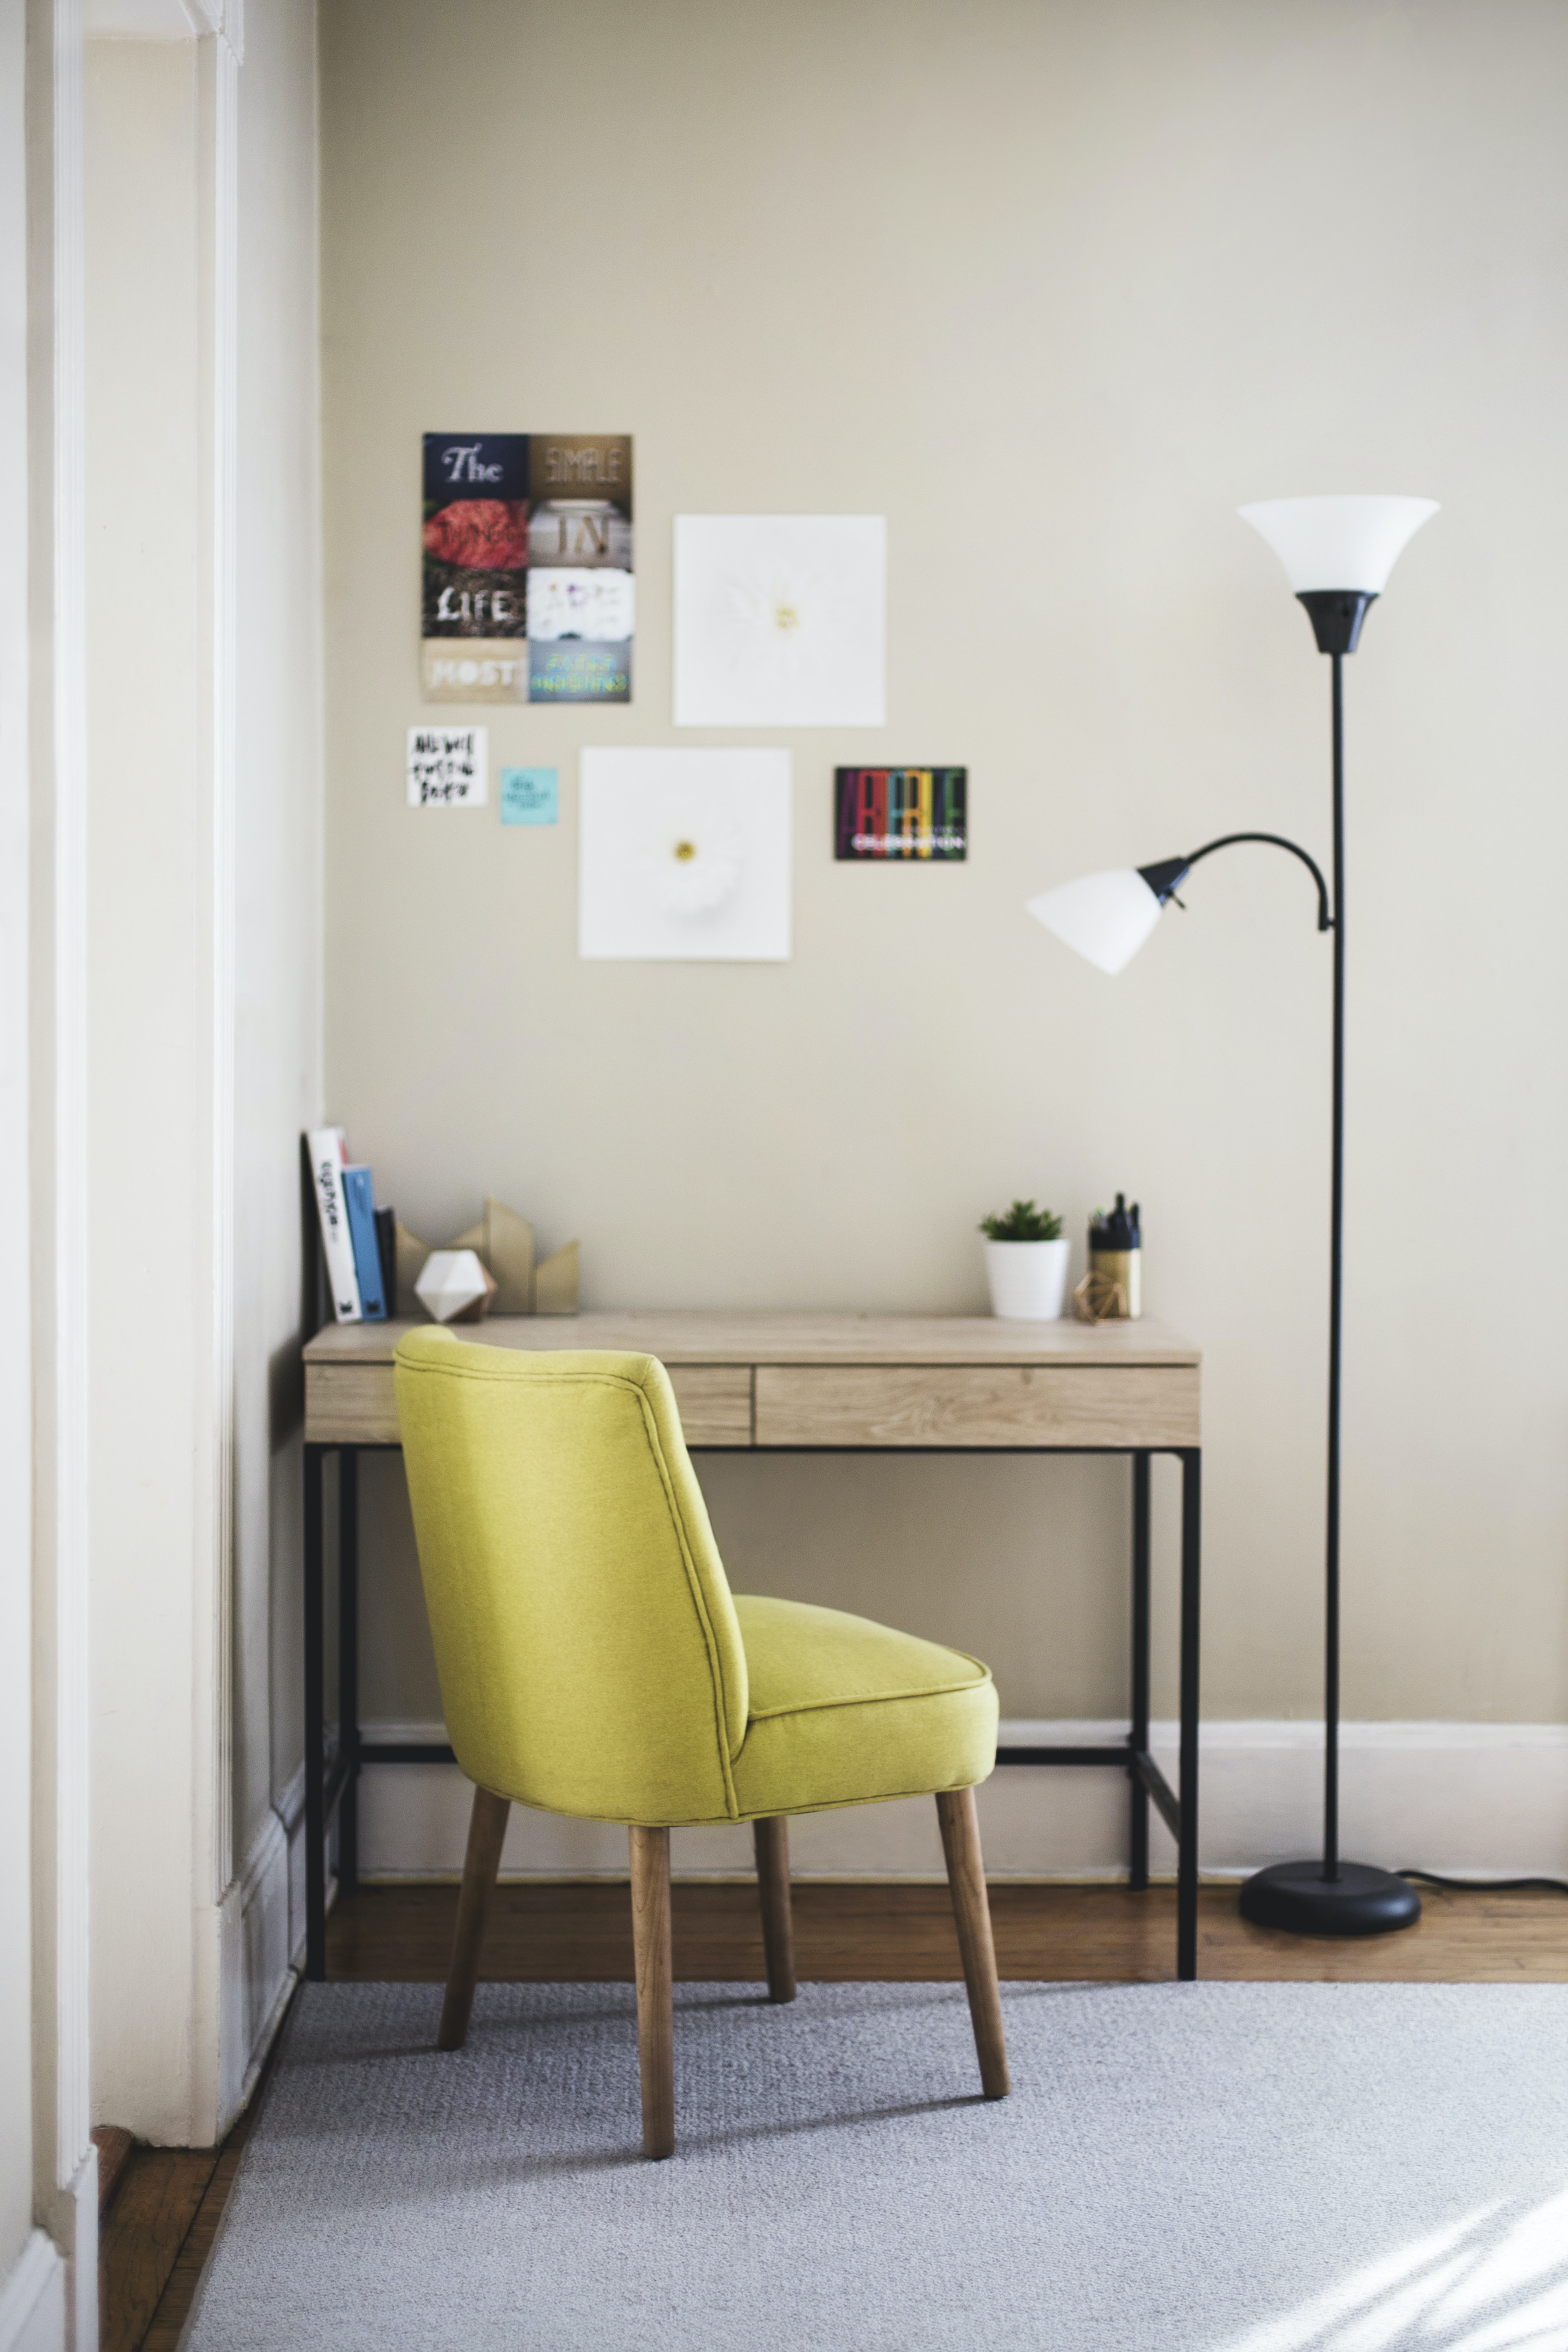 A small desk in the corner of a cozy room with a chair and a floor lamp